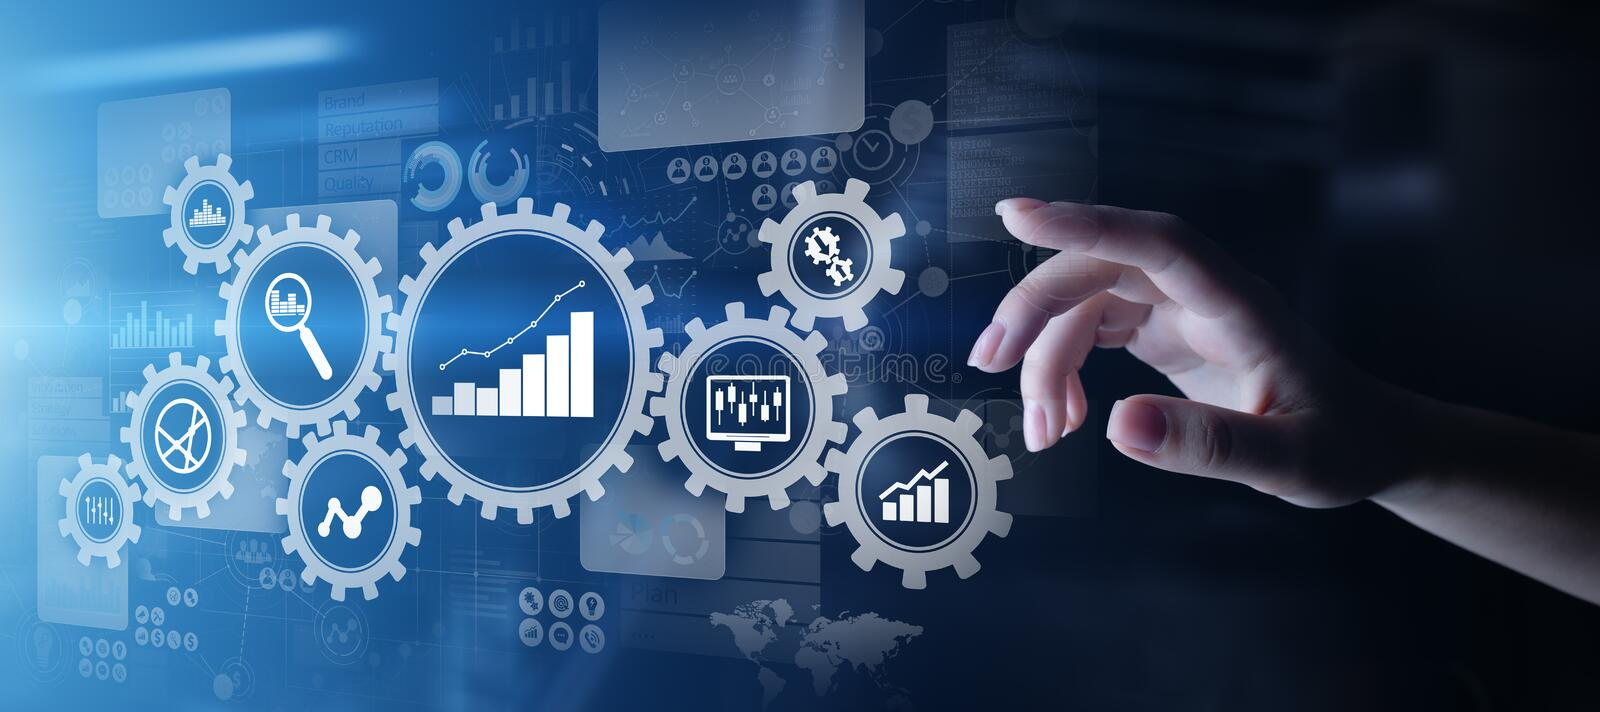 Big Data analysis, Business process analytics diagrams with gears and icons on virtual screen. Big Data analysis, Business process analytics diagrams with gears royalty free illustration